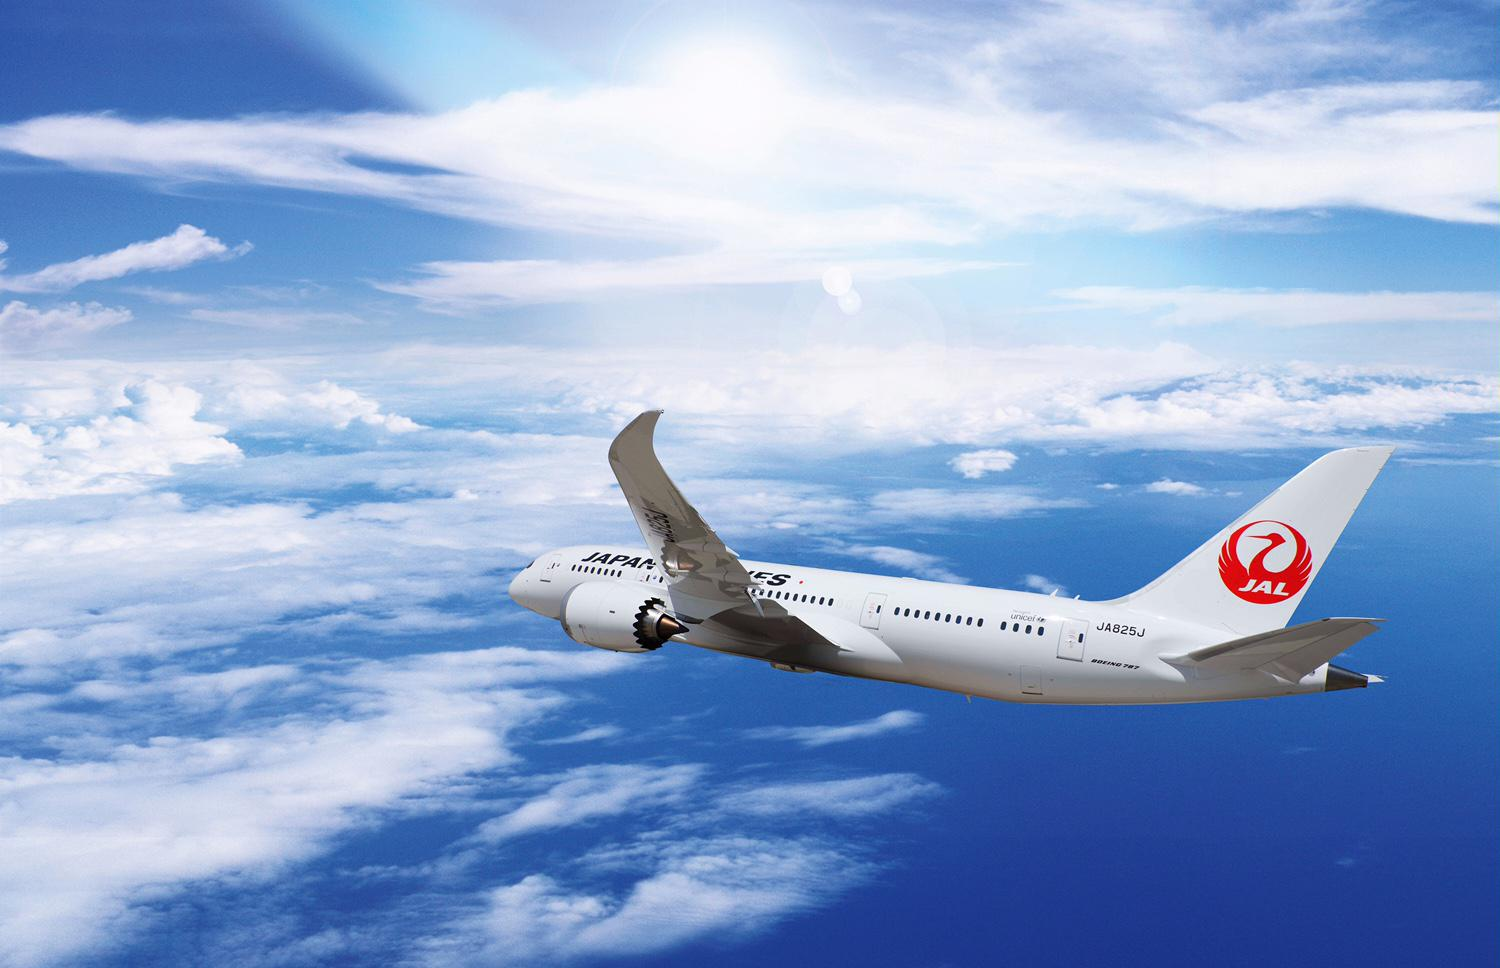 Japan Airlines to provide more personal space between passengers on domestic flights